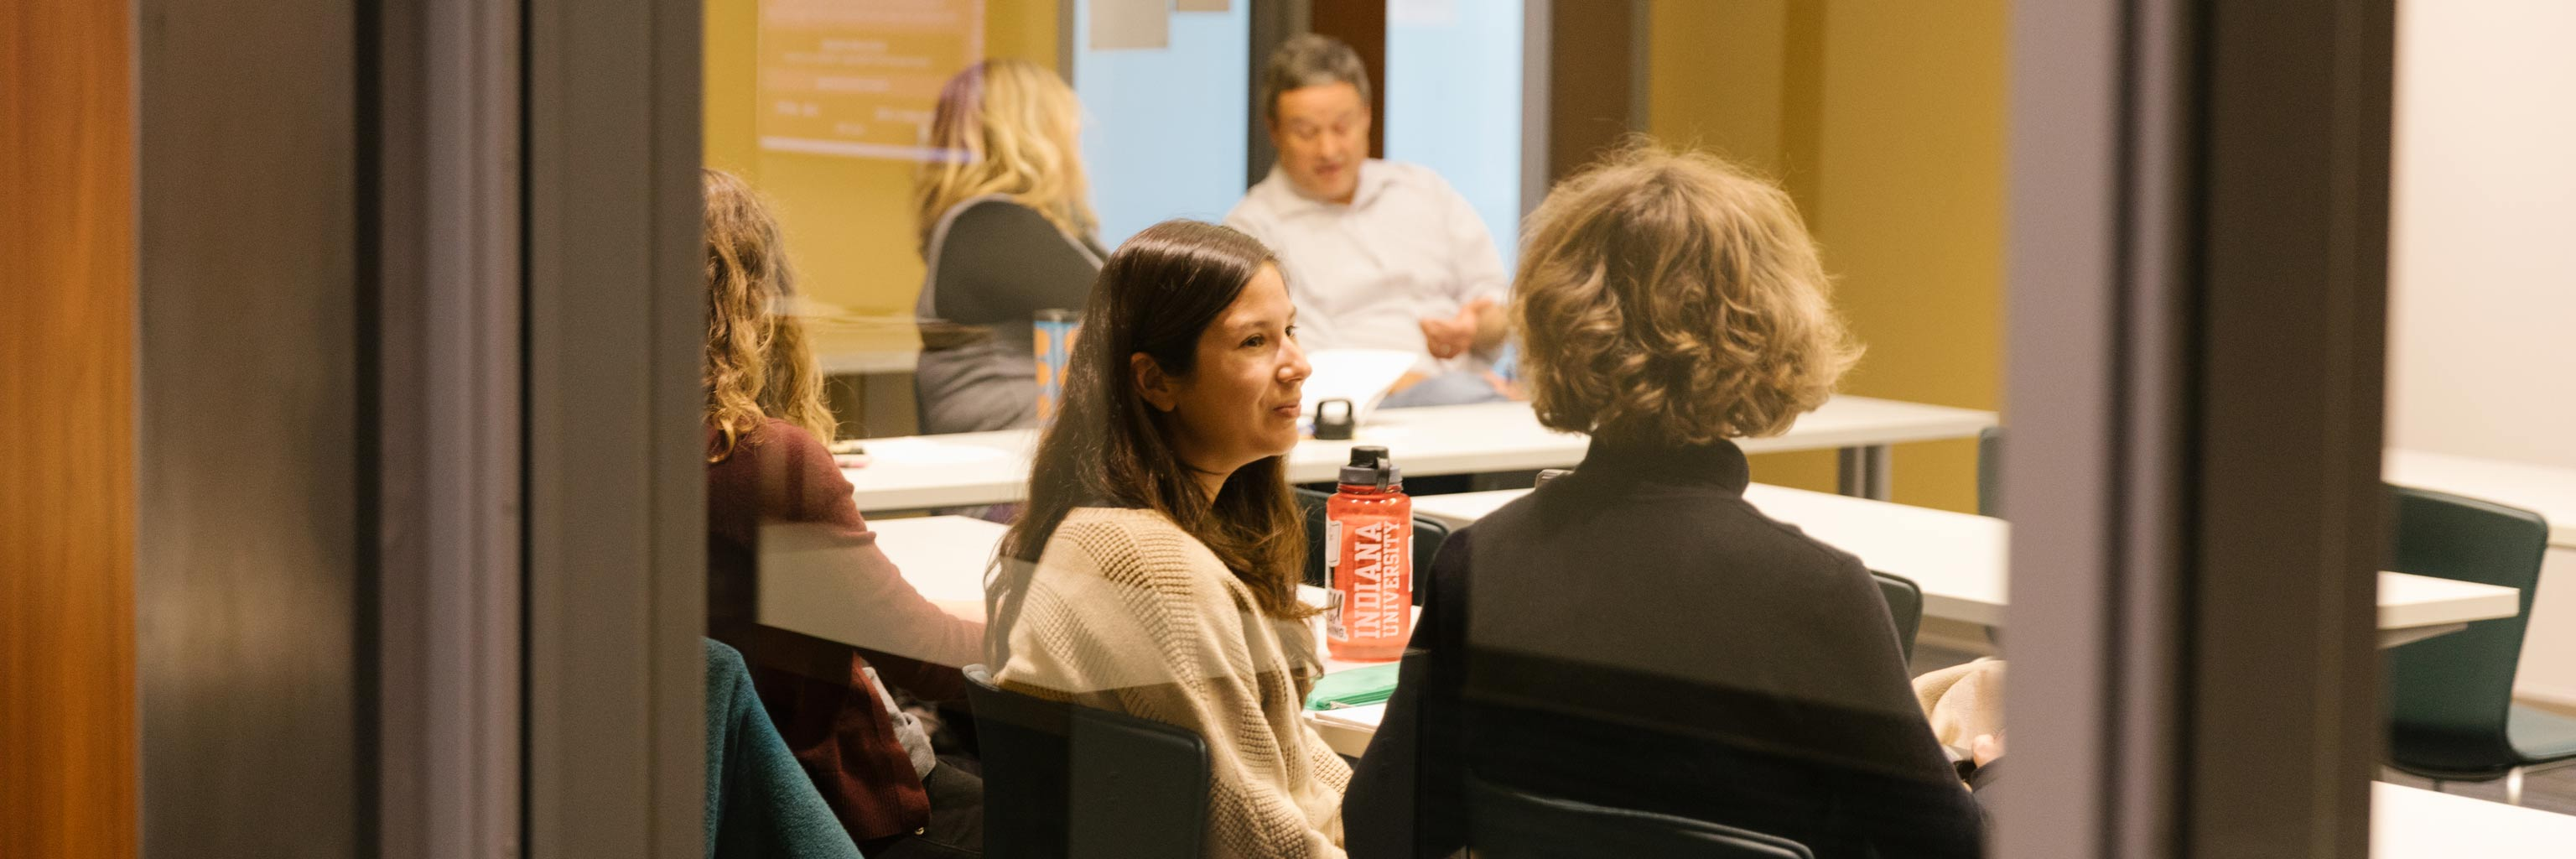 Spanish and Portuguese faculty interact with students in the classroom